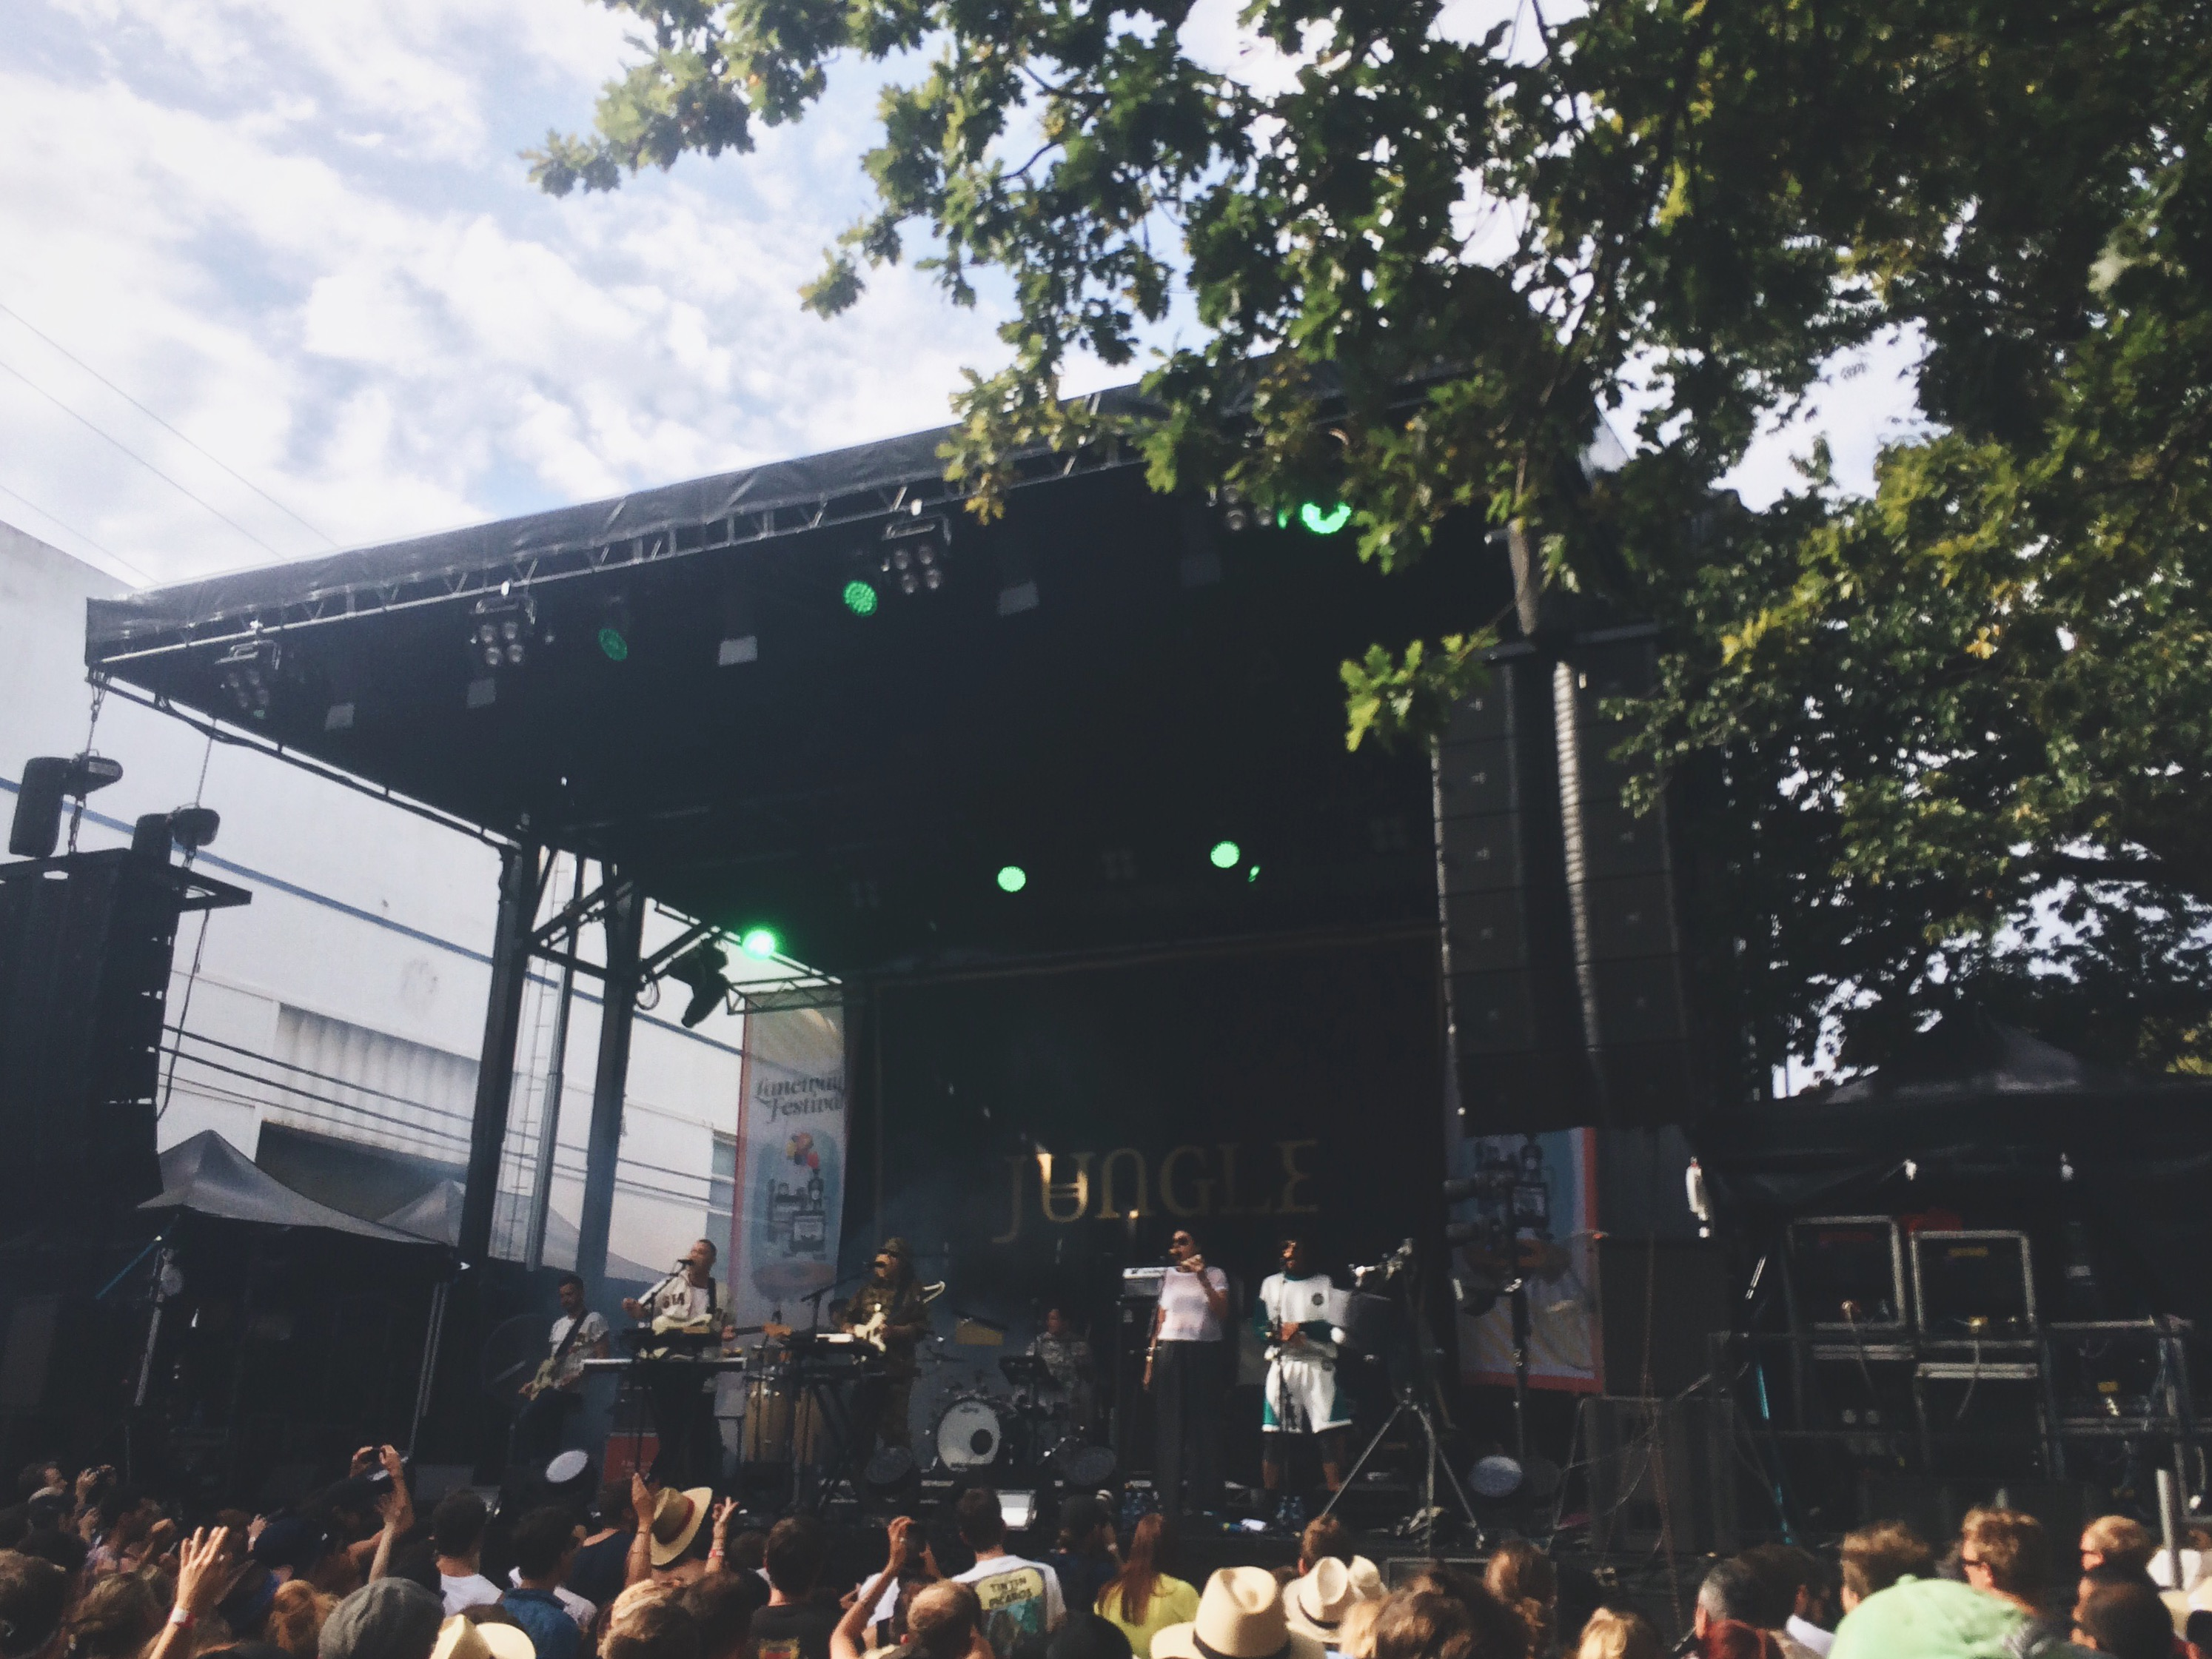 St. Jerome's Laneway Festival 2015, Melbourne, Music, FKA twigs, Caribou, St. Vincent, Bramble and Thorn